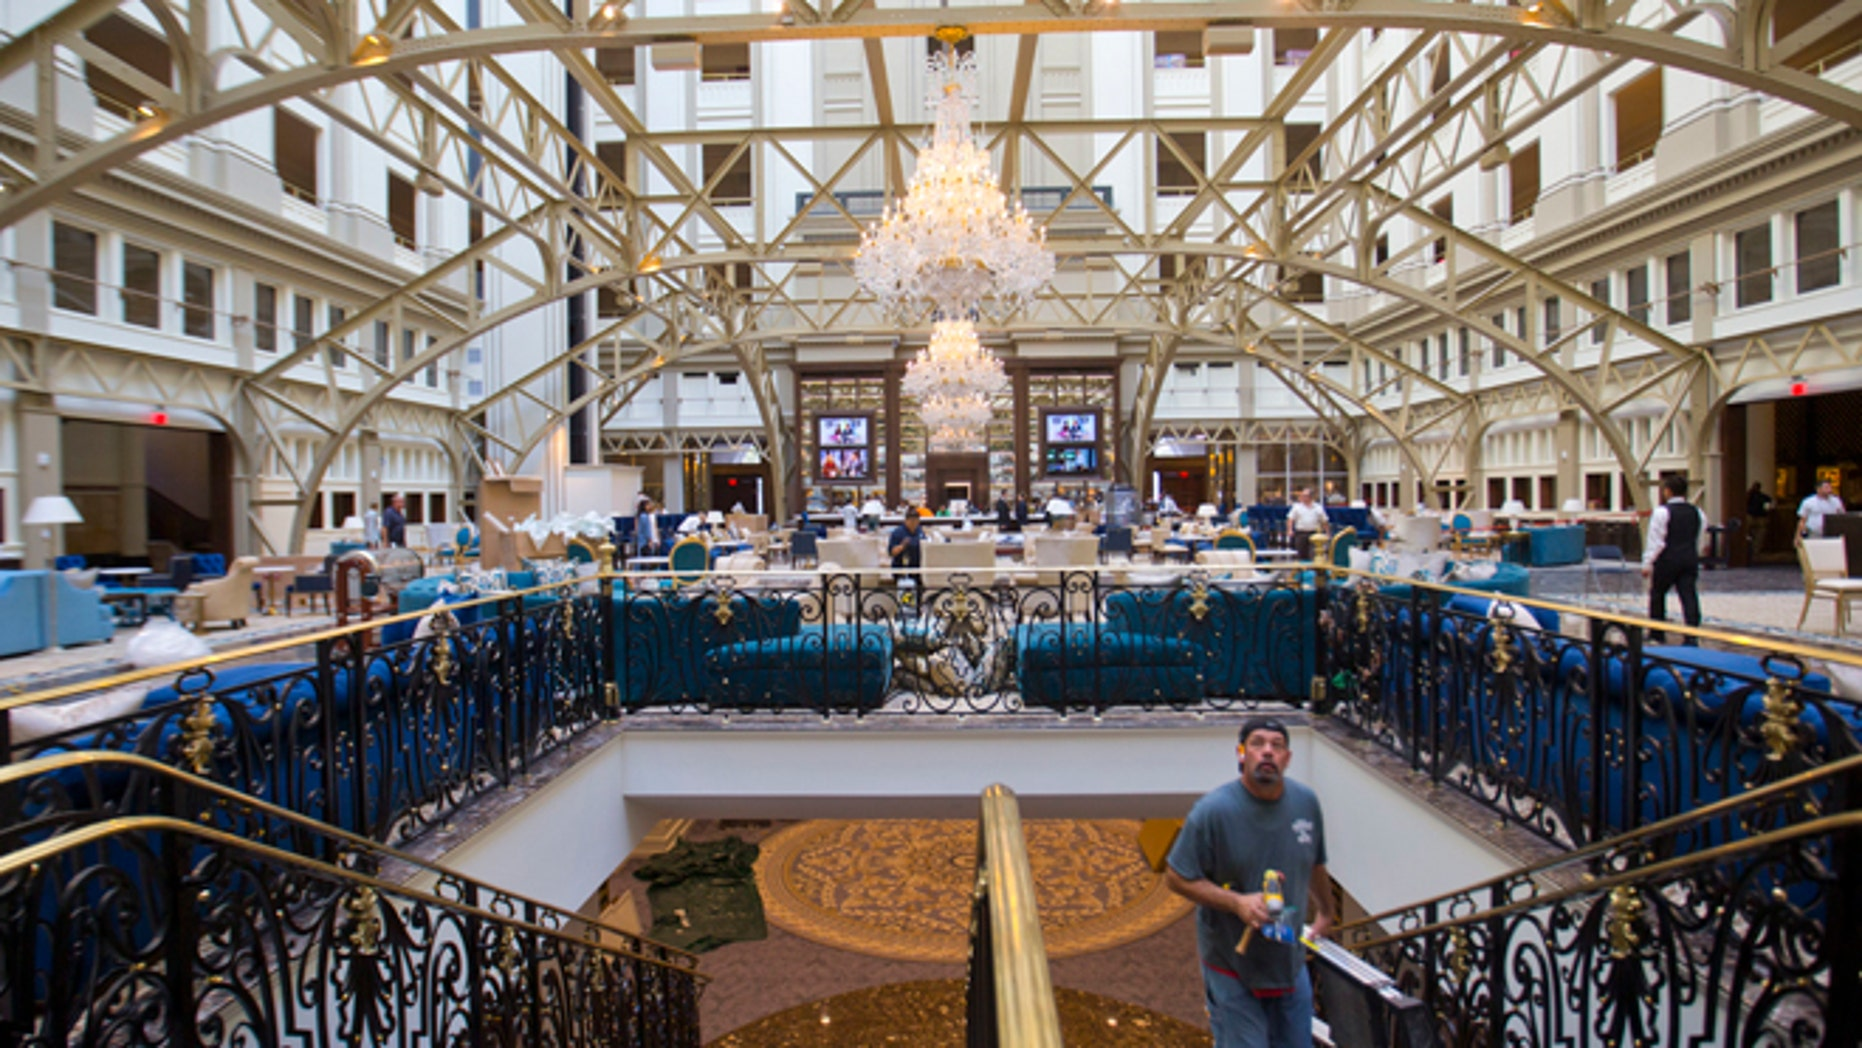 Workers move around inside the Trump International Hotel during it's 'soft-opening' in downtown Washington, Monday, Sept. 12, 2016 in Washington